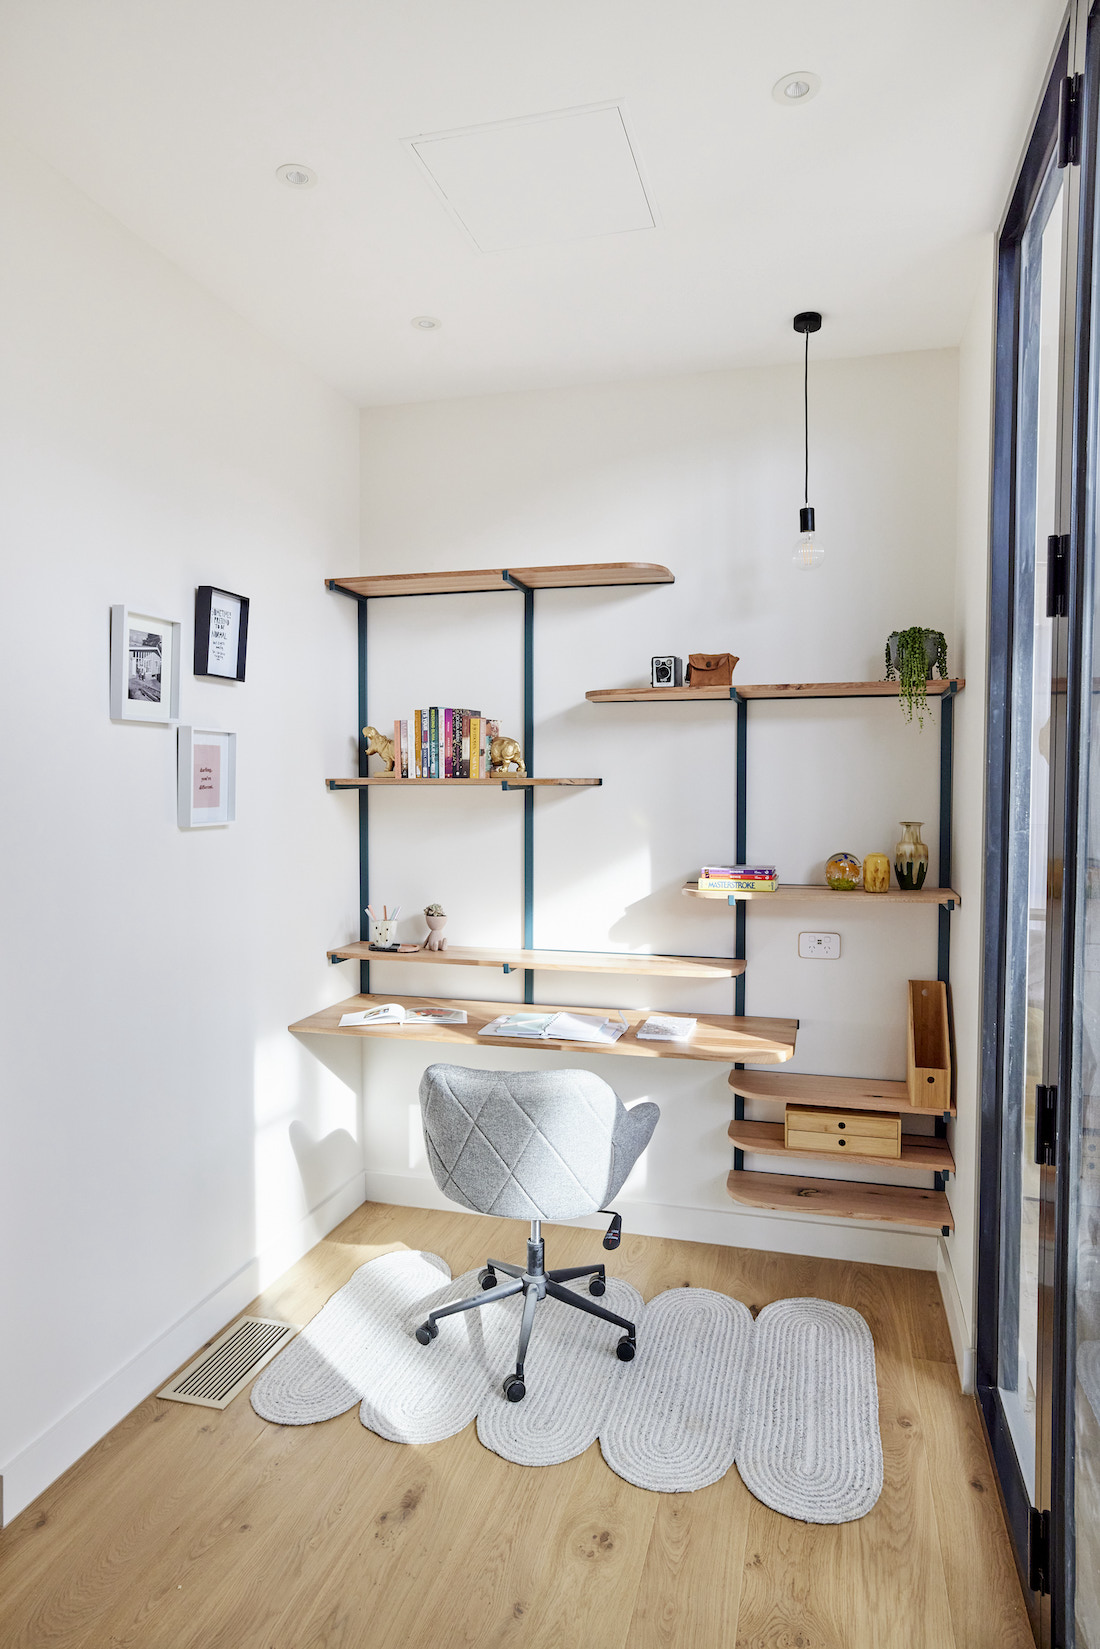 Abstract shelf in study nook